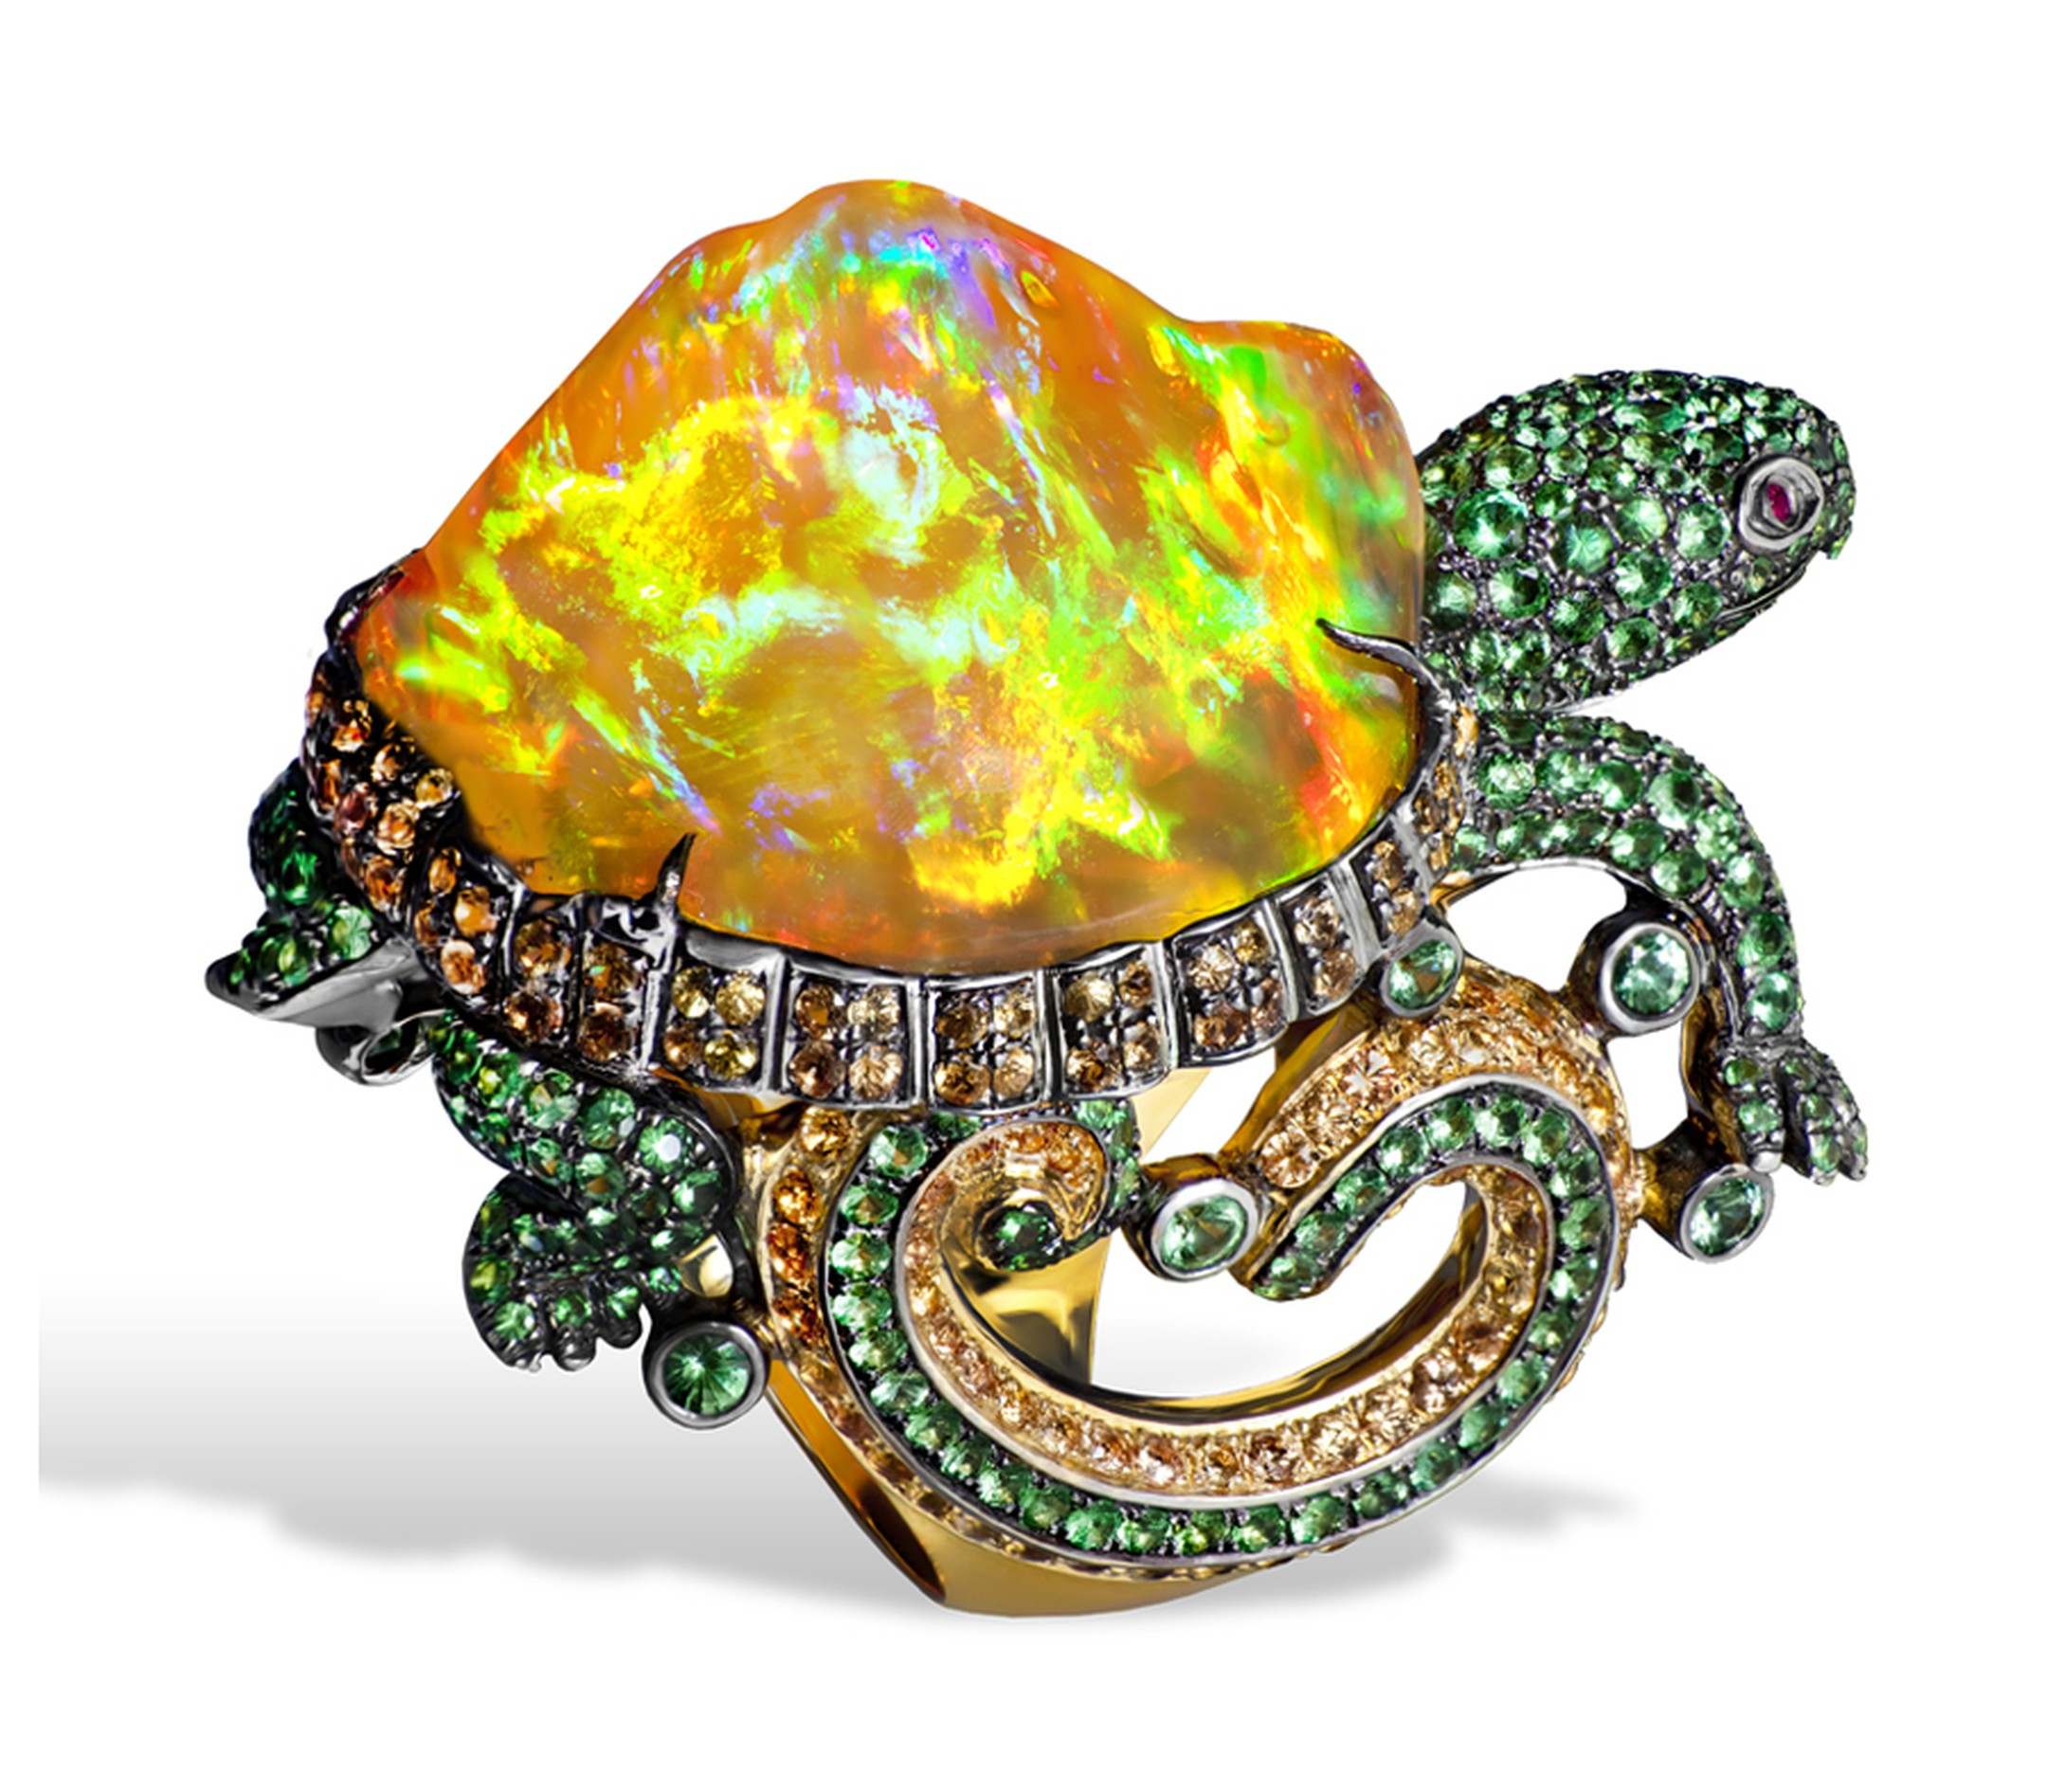 Lydia Courteille. Turtle ring with orange Mexican opal, orange sapphires, green garnets, yellow gold. POA